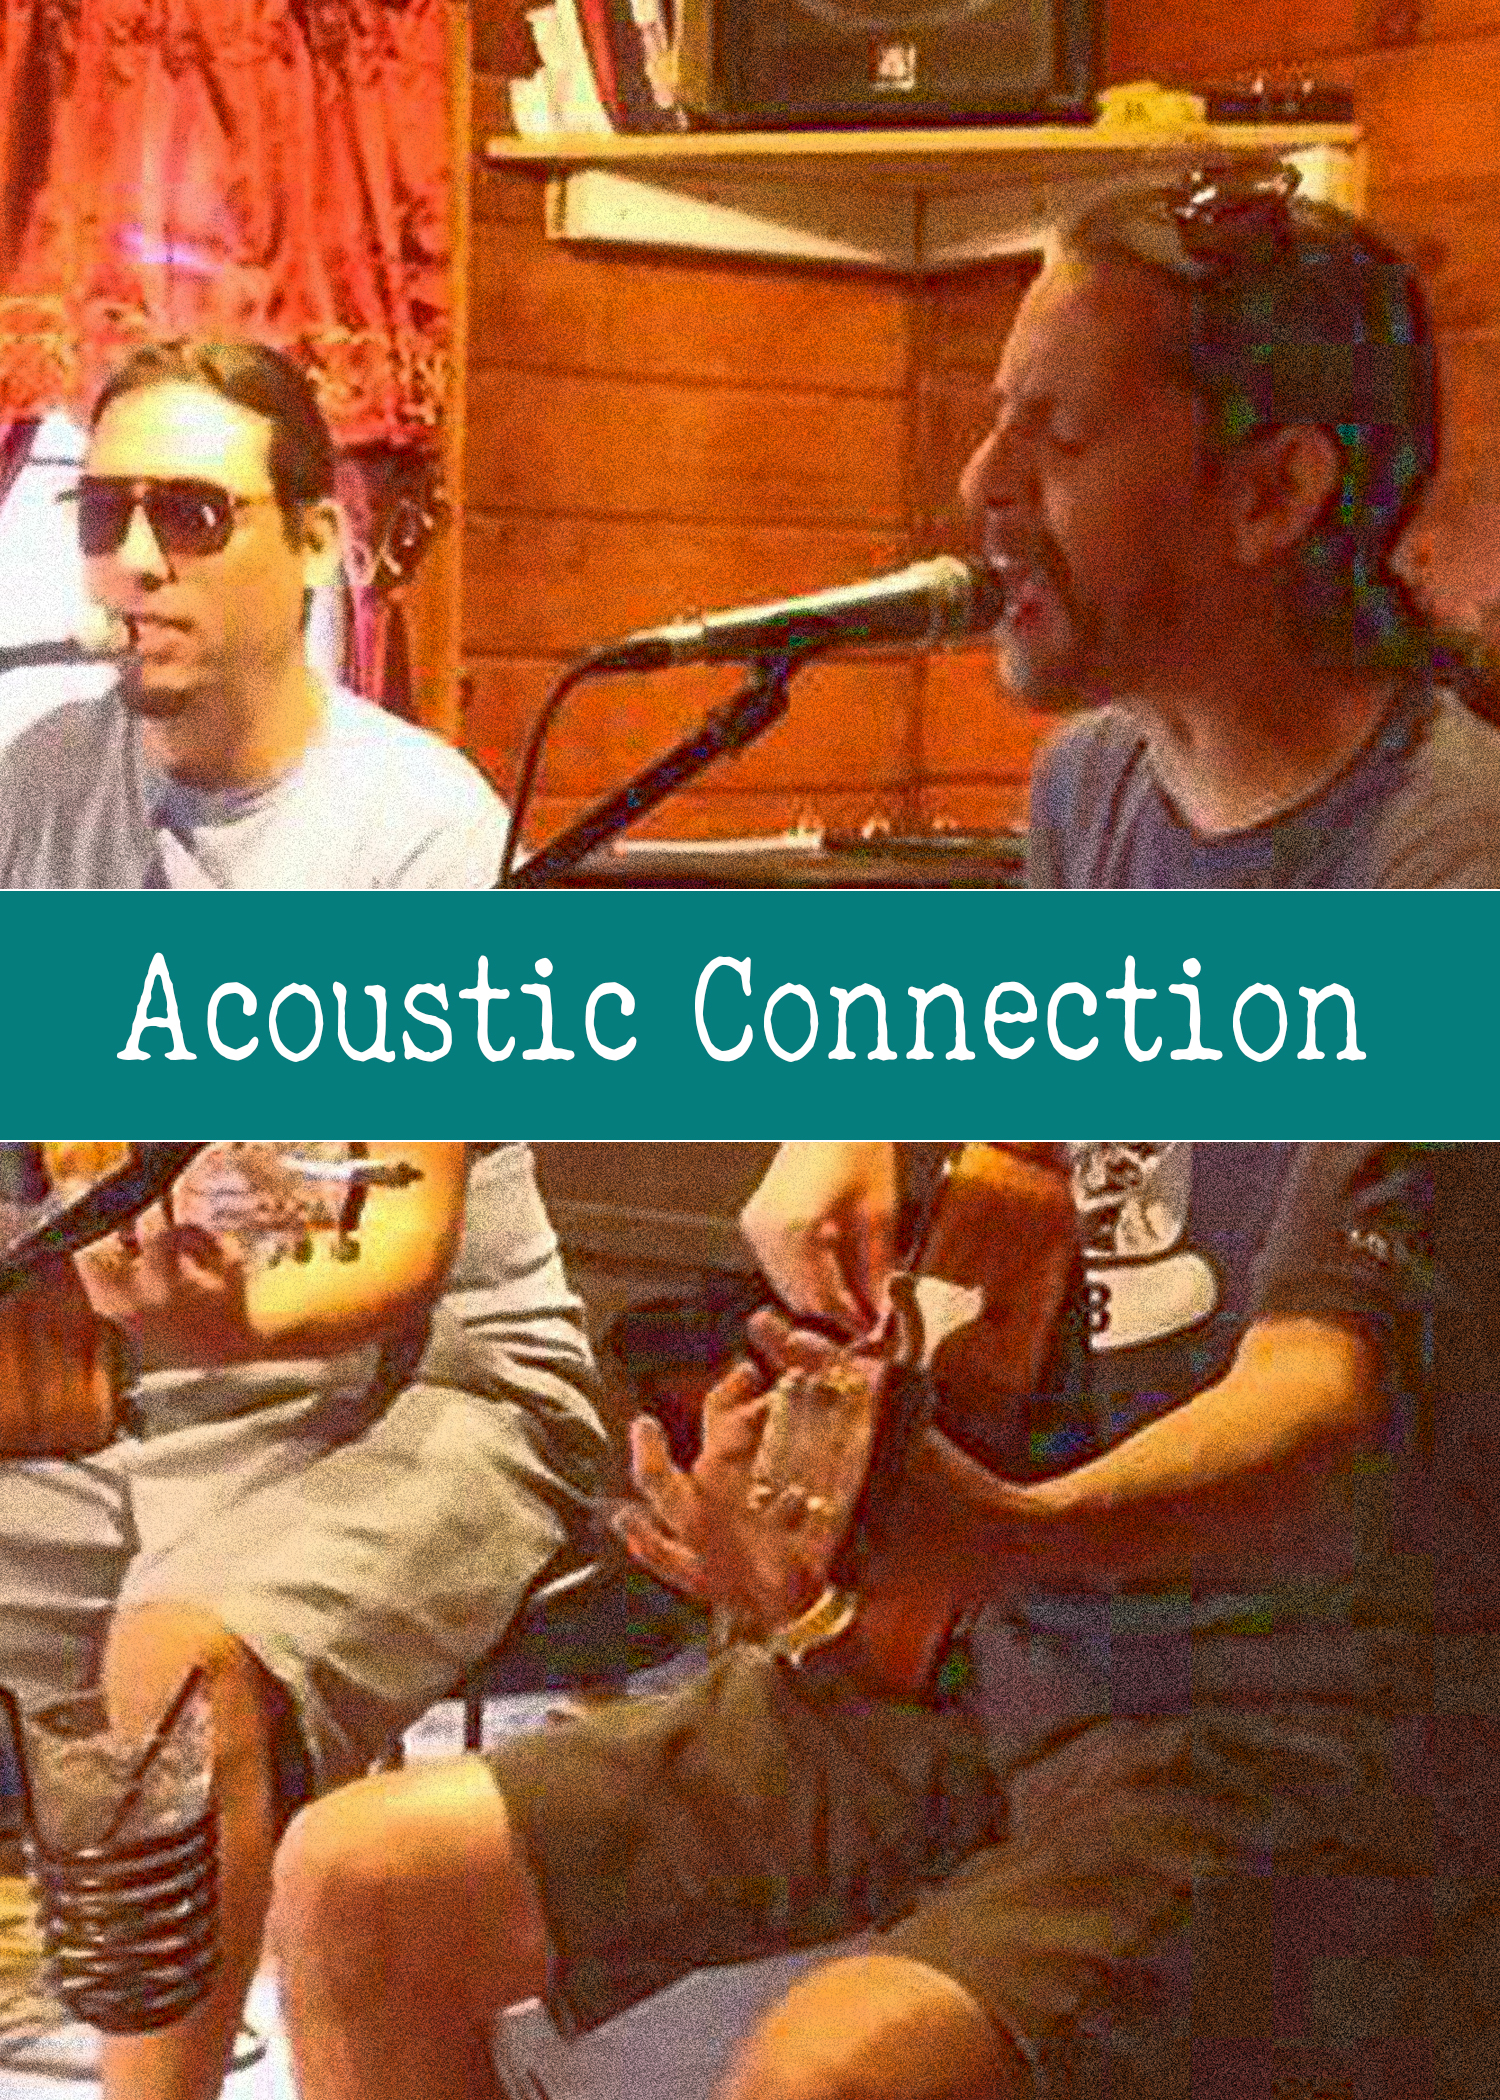 The Acoustic Connection